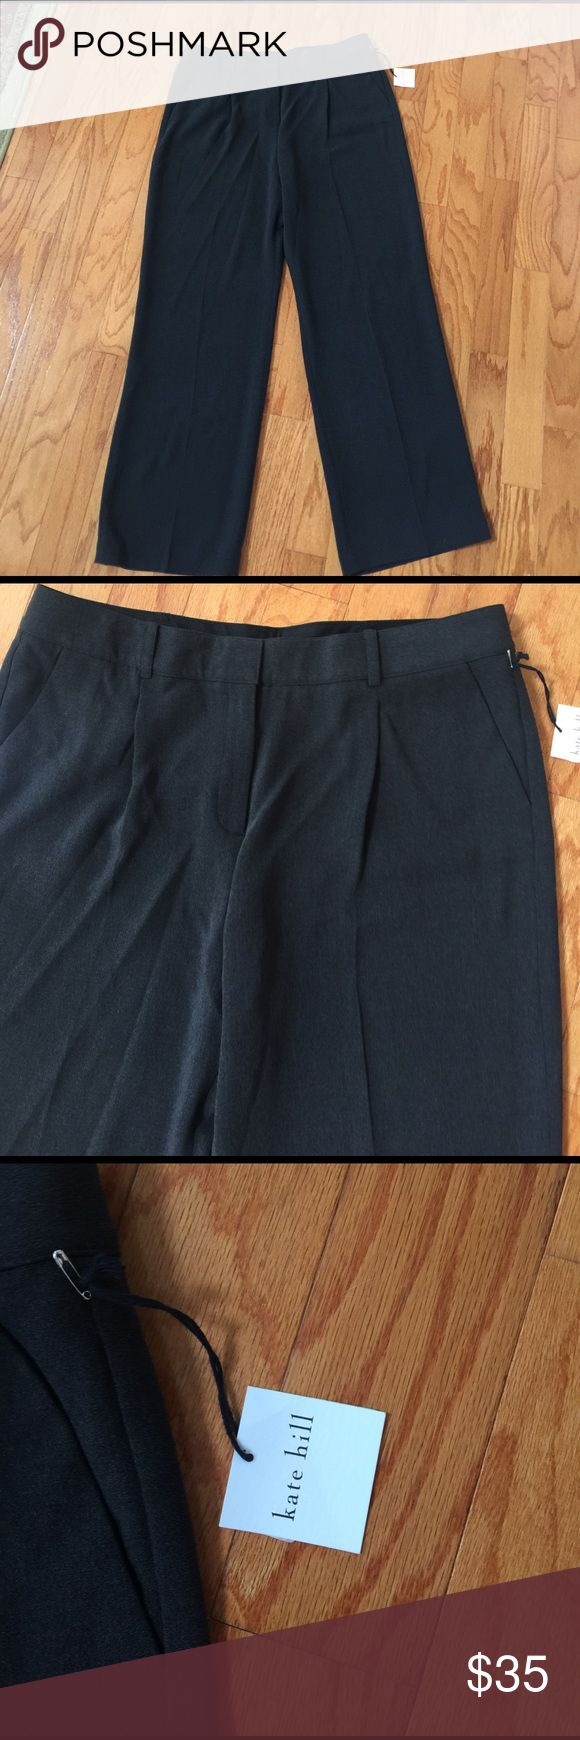 """NWT charcoal grey career pants KATE HILL sz 16 NEW WITH TAGS!!   Ladies charcoal grey career pants from KATE SPADE  Size 16  Waist: 36""""   Hips: 50""""   Rise: 13""""   Inseam: 33.5""""  Hook & zip fly fastening. Slant front pockets & flat hip pockets. Pleated front.  Shell: 51% polyester, 49% acetate.  In perfect New With tags condition.  MSRP $98  From a smoke free home. Kate Hill Pants Trousers"""